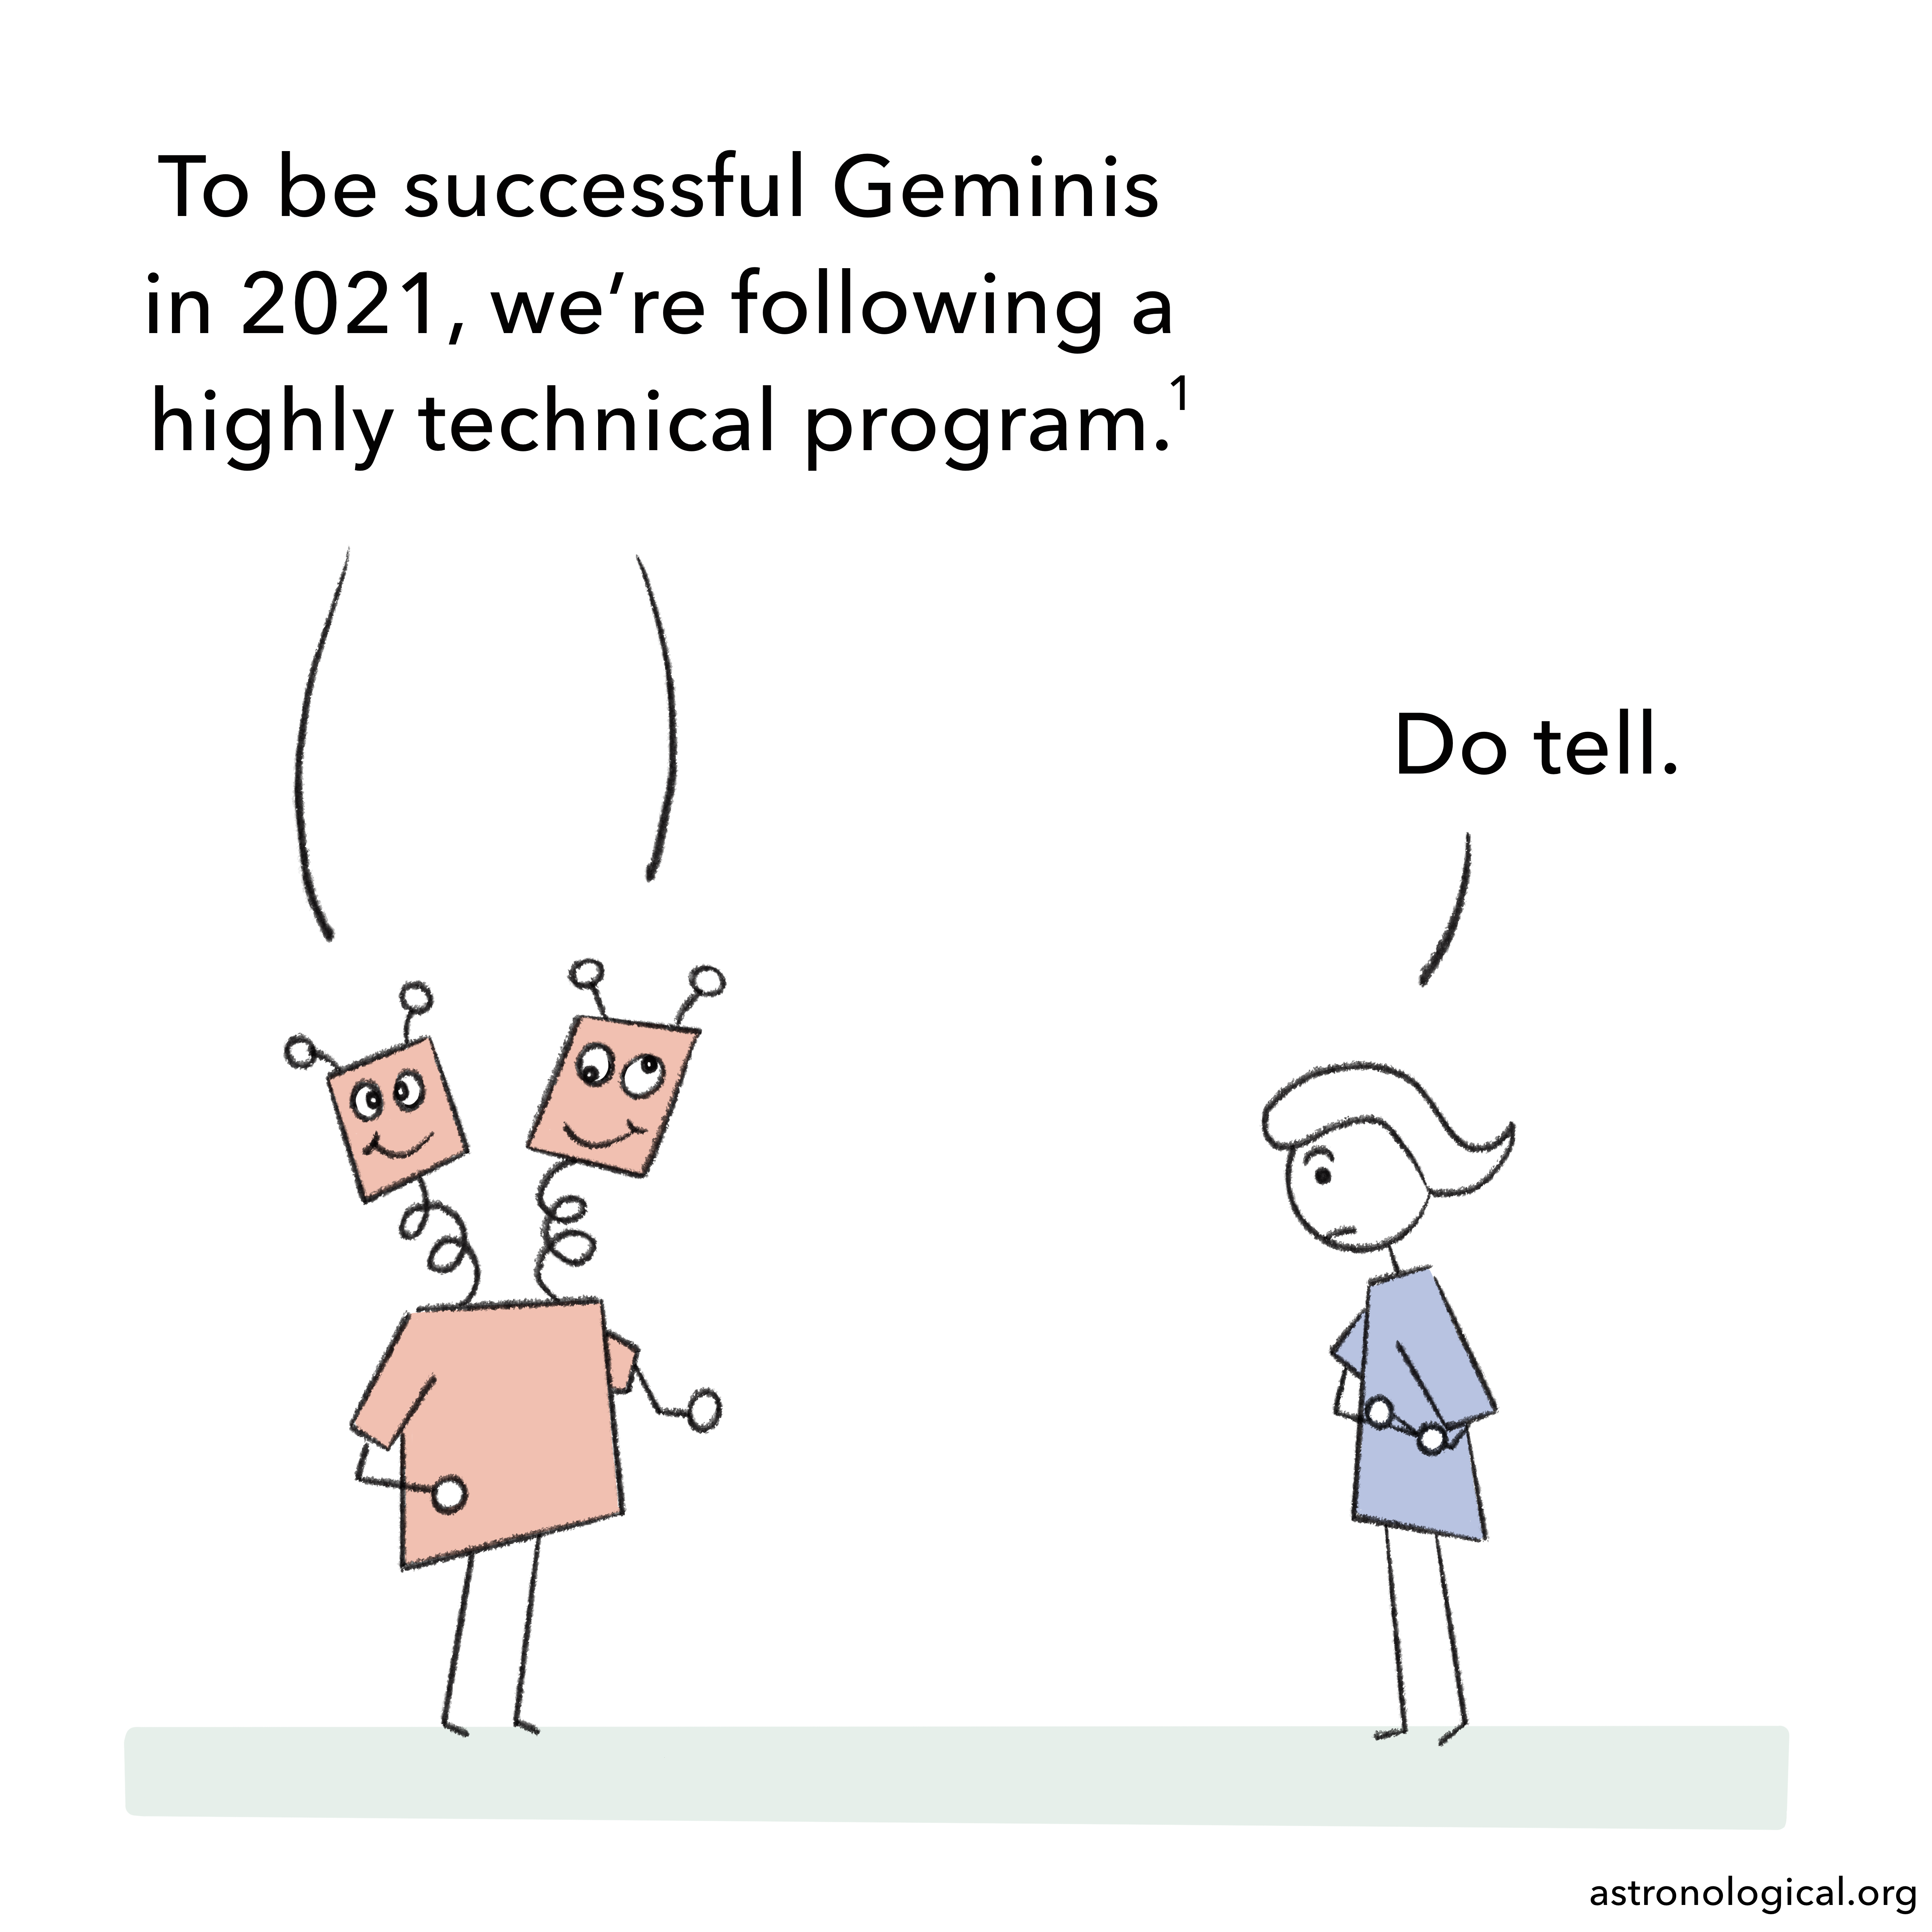 A cartoon robot with one body and two heads is talking to a stick figure girl. The robot represents the Gemini twins. They look a bit goofy. The twins say to the girl: To be successful Geminis in 2021, we're following a highly technical program. The girl raises her eyebrows and replies: Do tell.